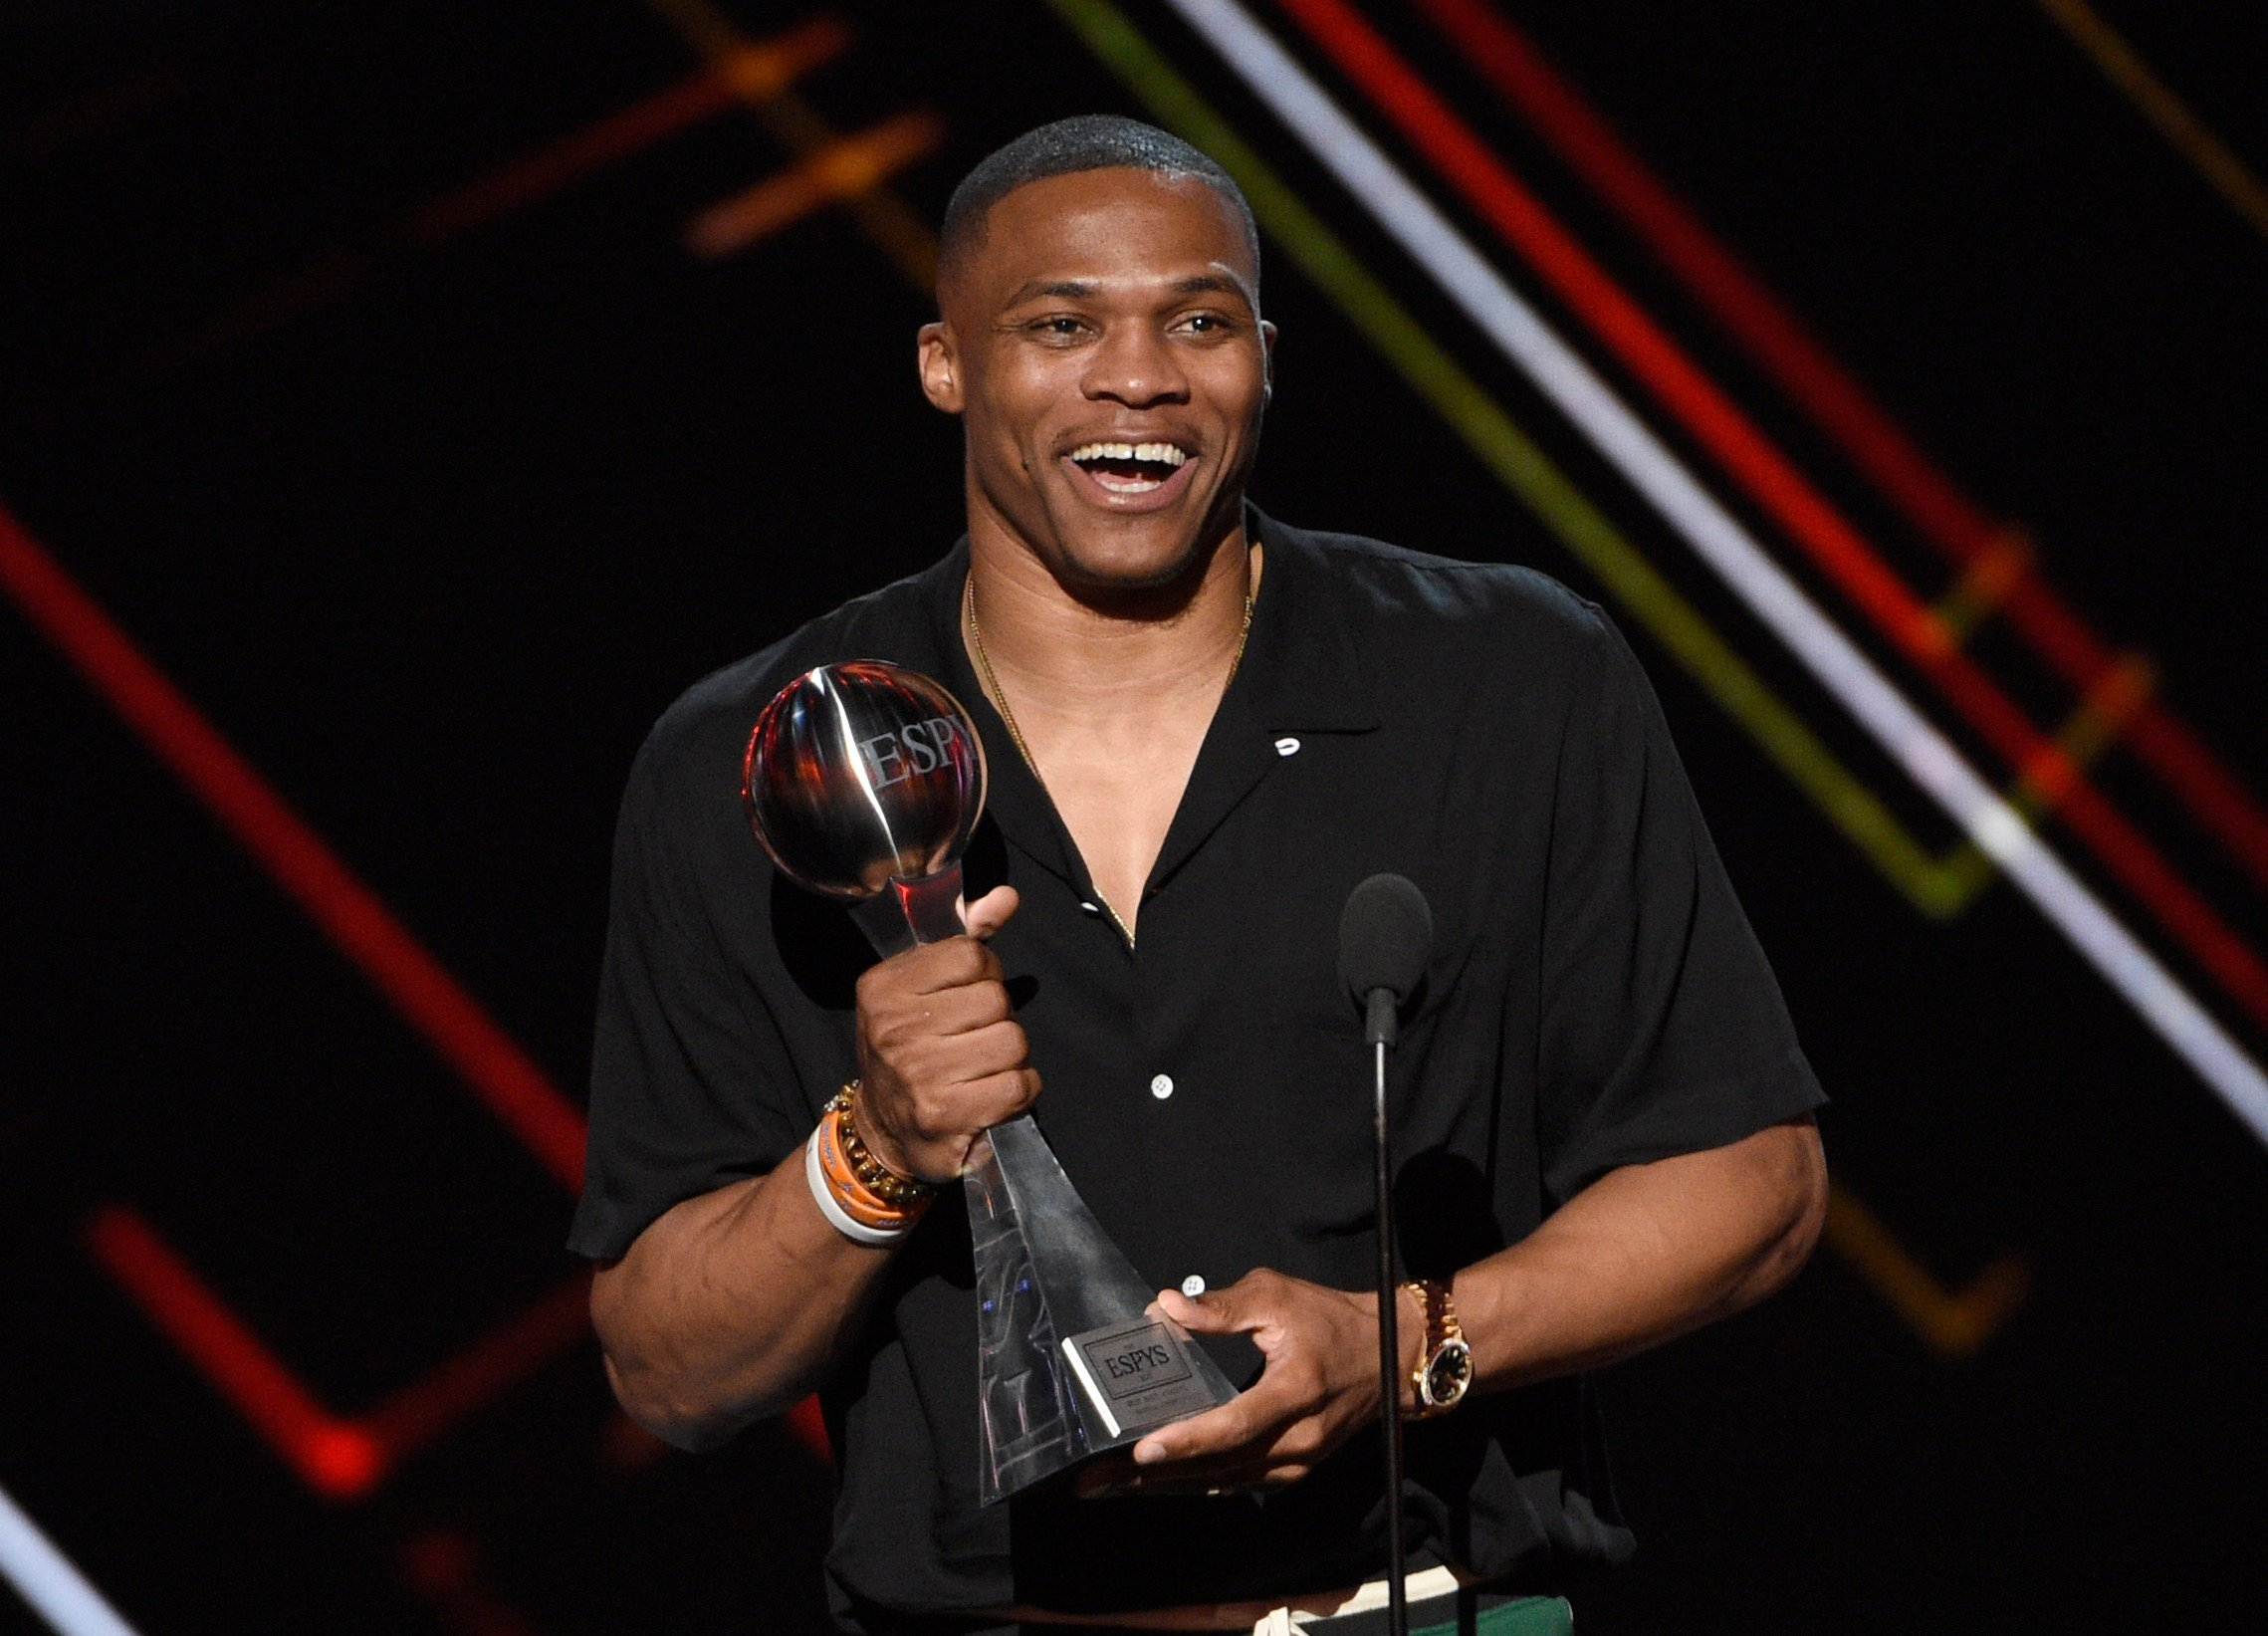 NBA basketball player Russell Westbrook, of the Oklahoma City Thunder, accepts the award for best male athlete at the ESPYS at the Microsoft Theater on Wednesday, July 12, 2017, in Los Angeles. (Photo by Chris Pizzello/Invision/AP)